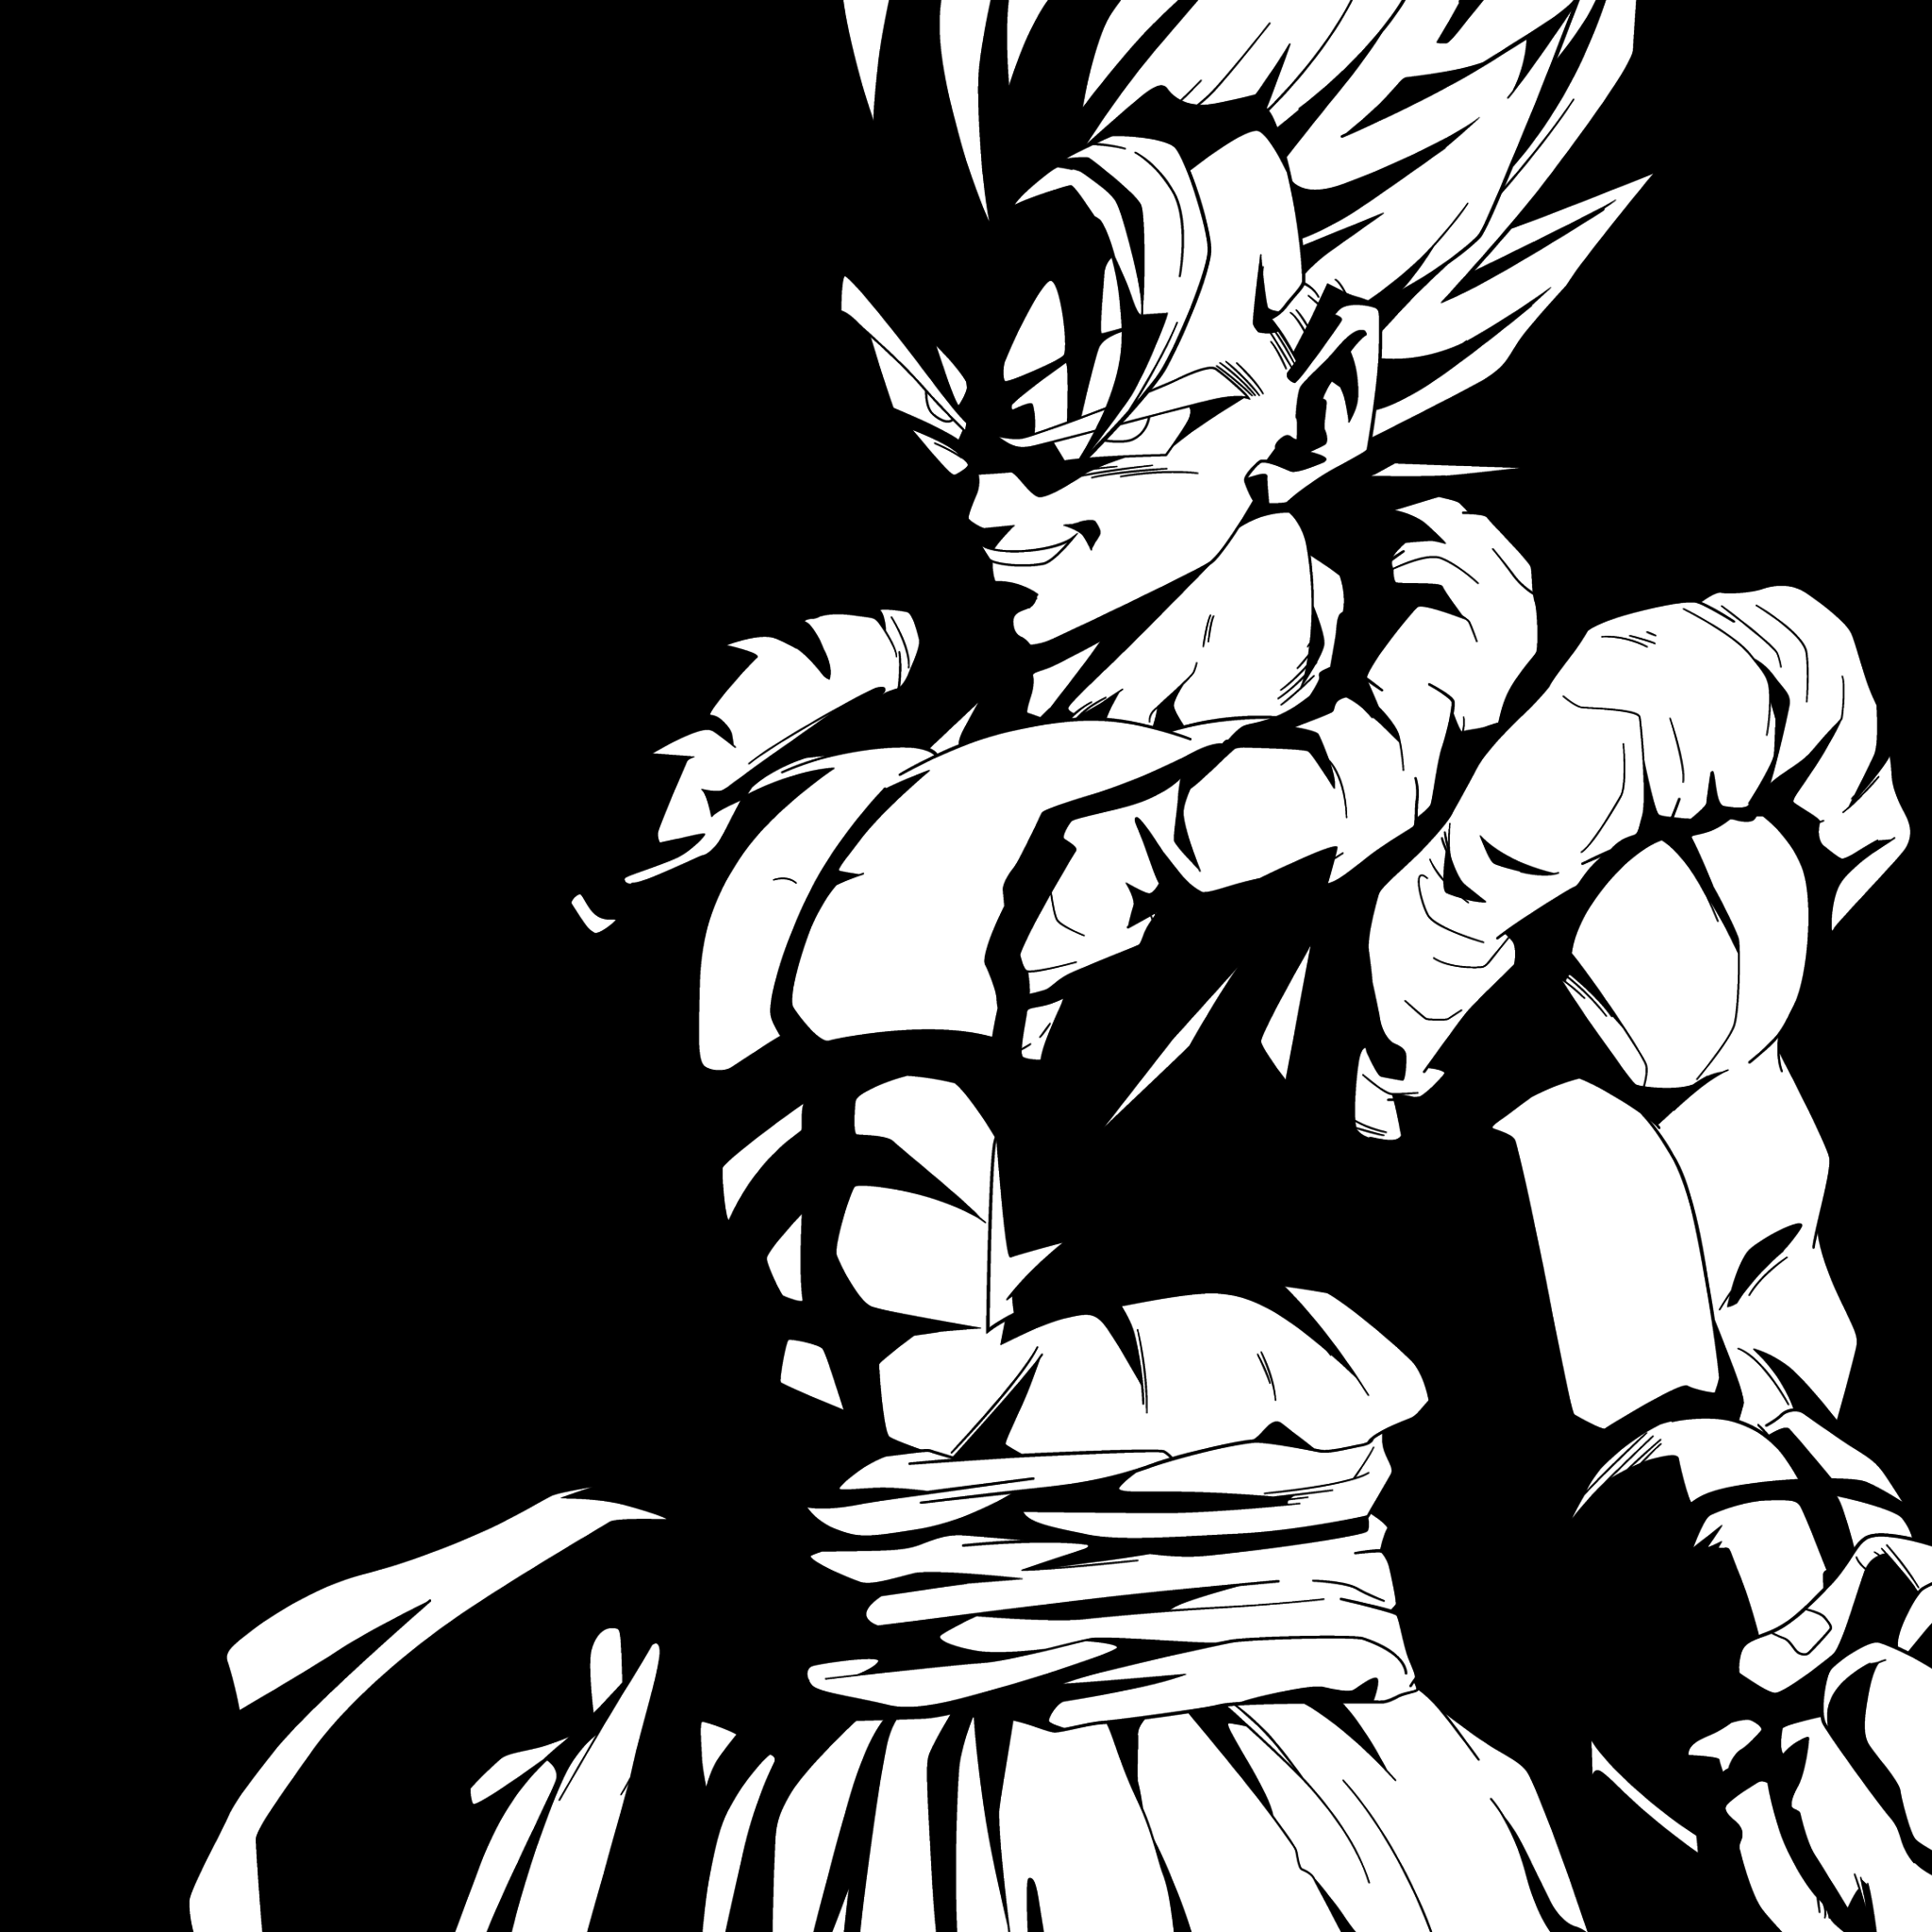 Free Download Goku Black And White Wallpapers Top Goku Black And White 2048x2048 For Your Desktop Mobile Tablet Explore 19 Dragon Ball Z Black And White Wallpapers Dragon Ball